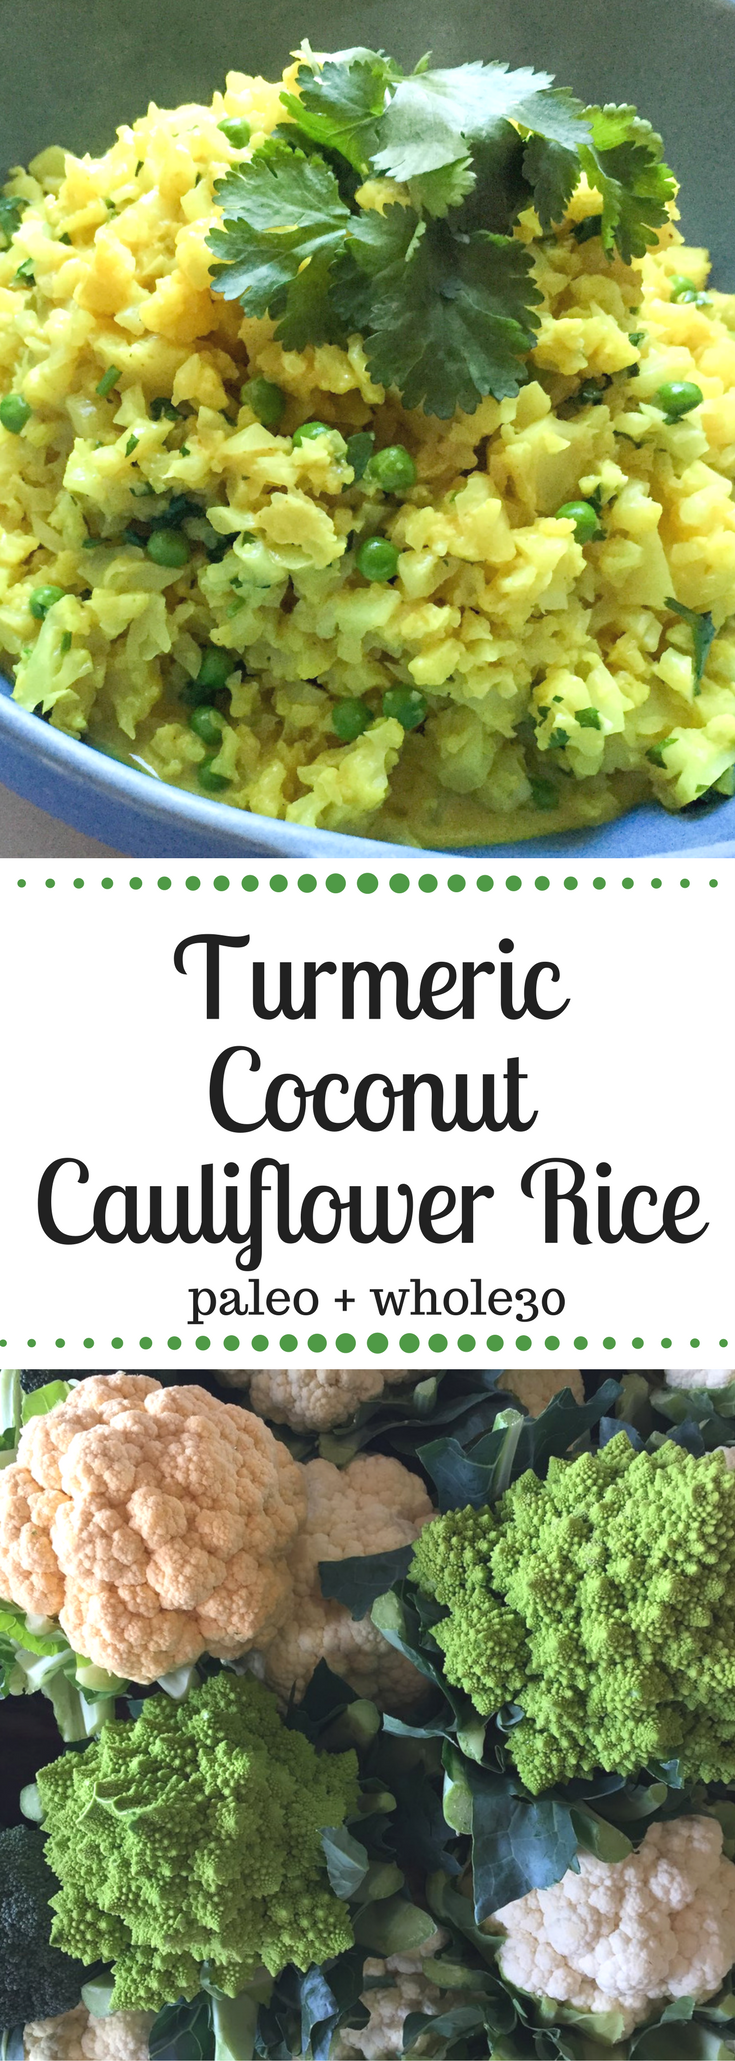 Turmeric Coconut Cauliflower Rice | Coconut cauliflower ...